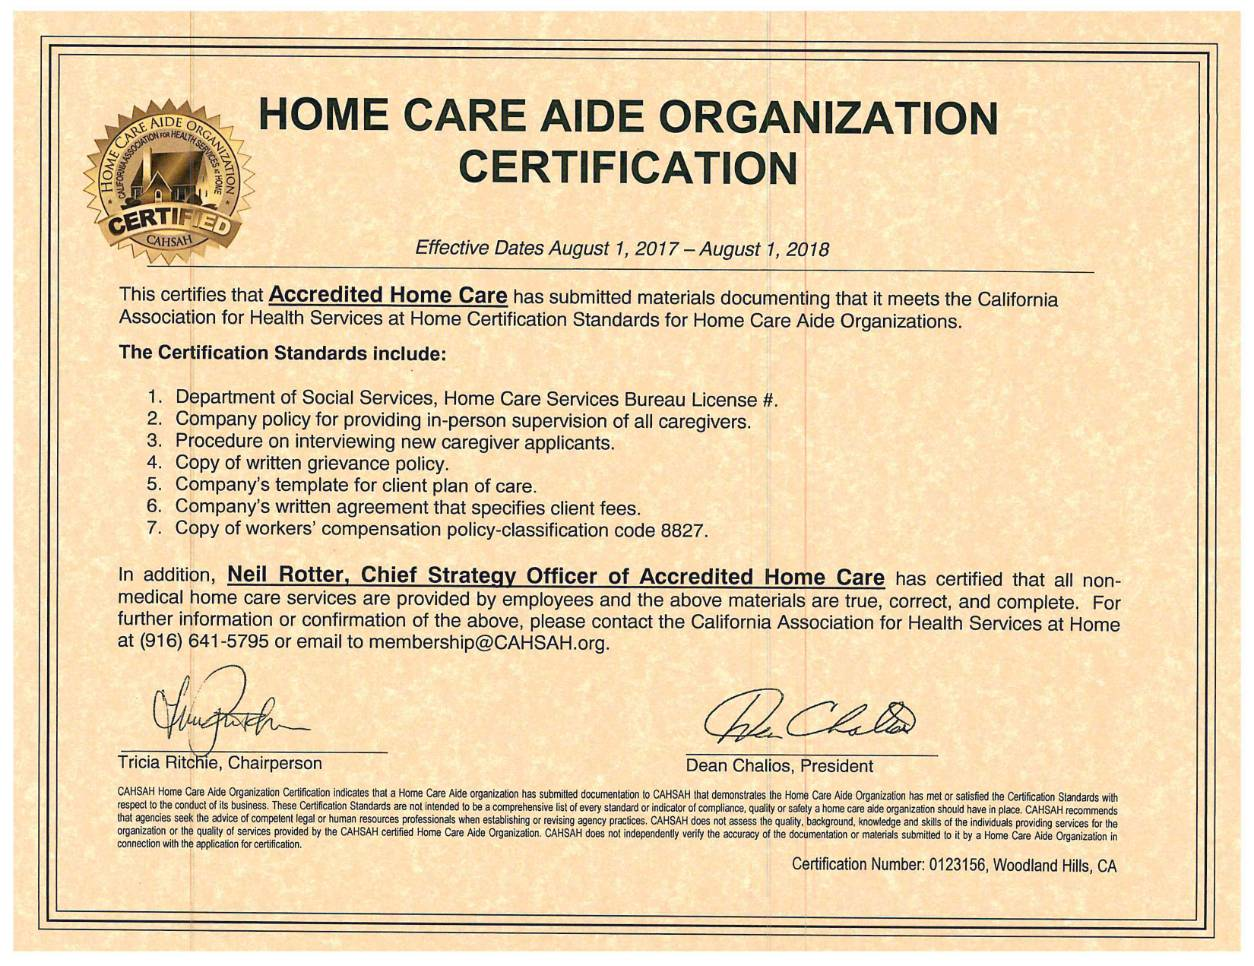 CAHSAH Home Care Organization Certification Document